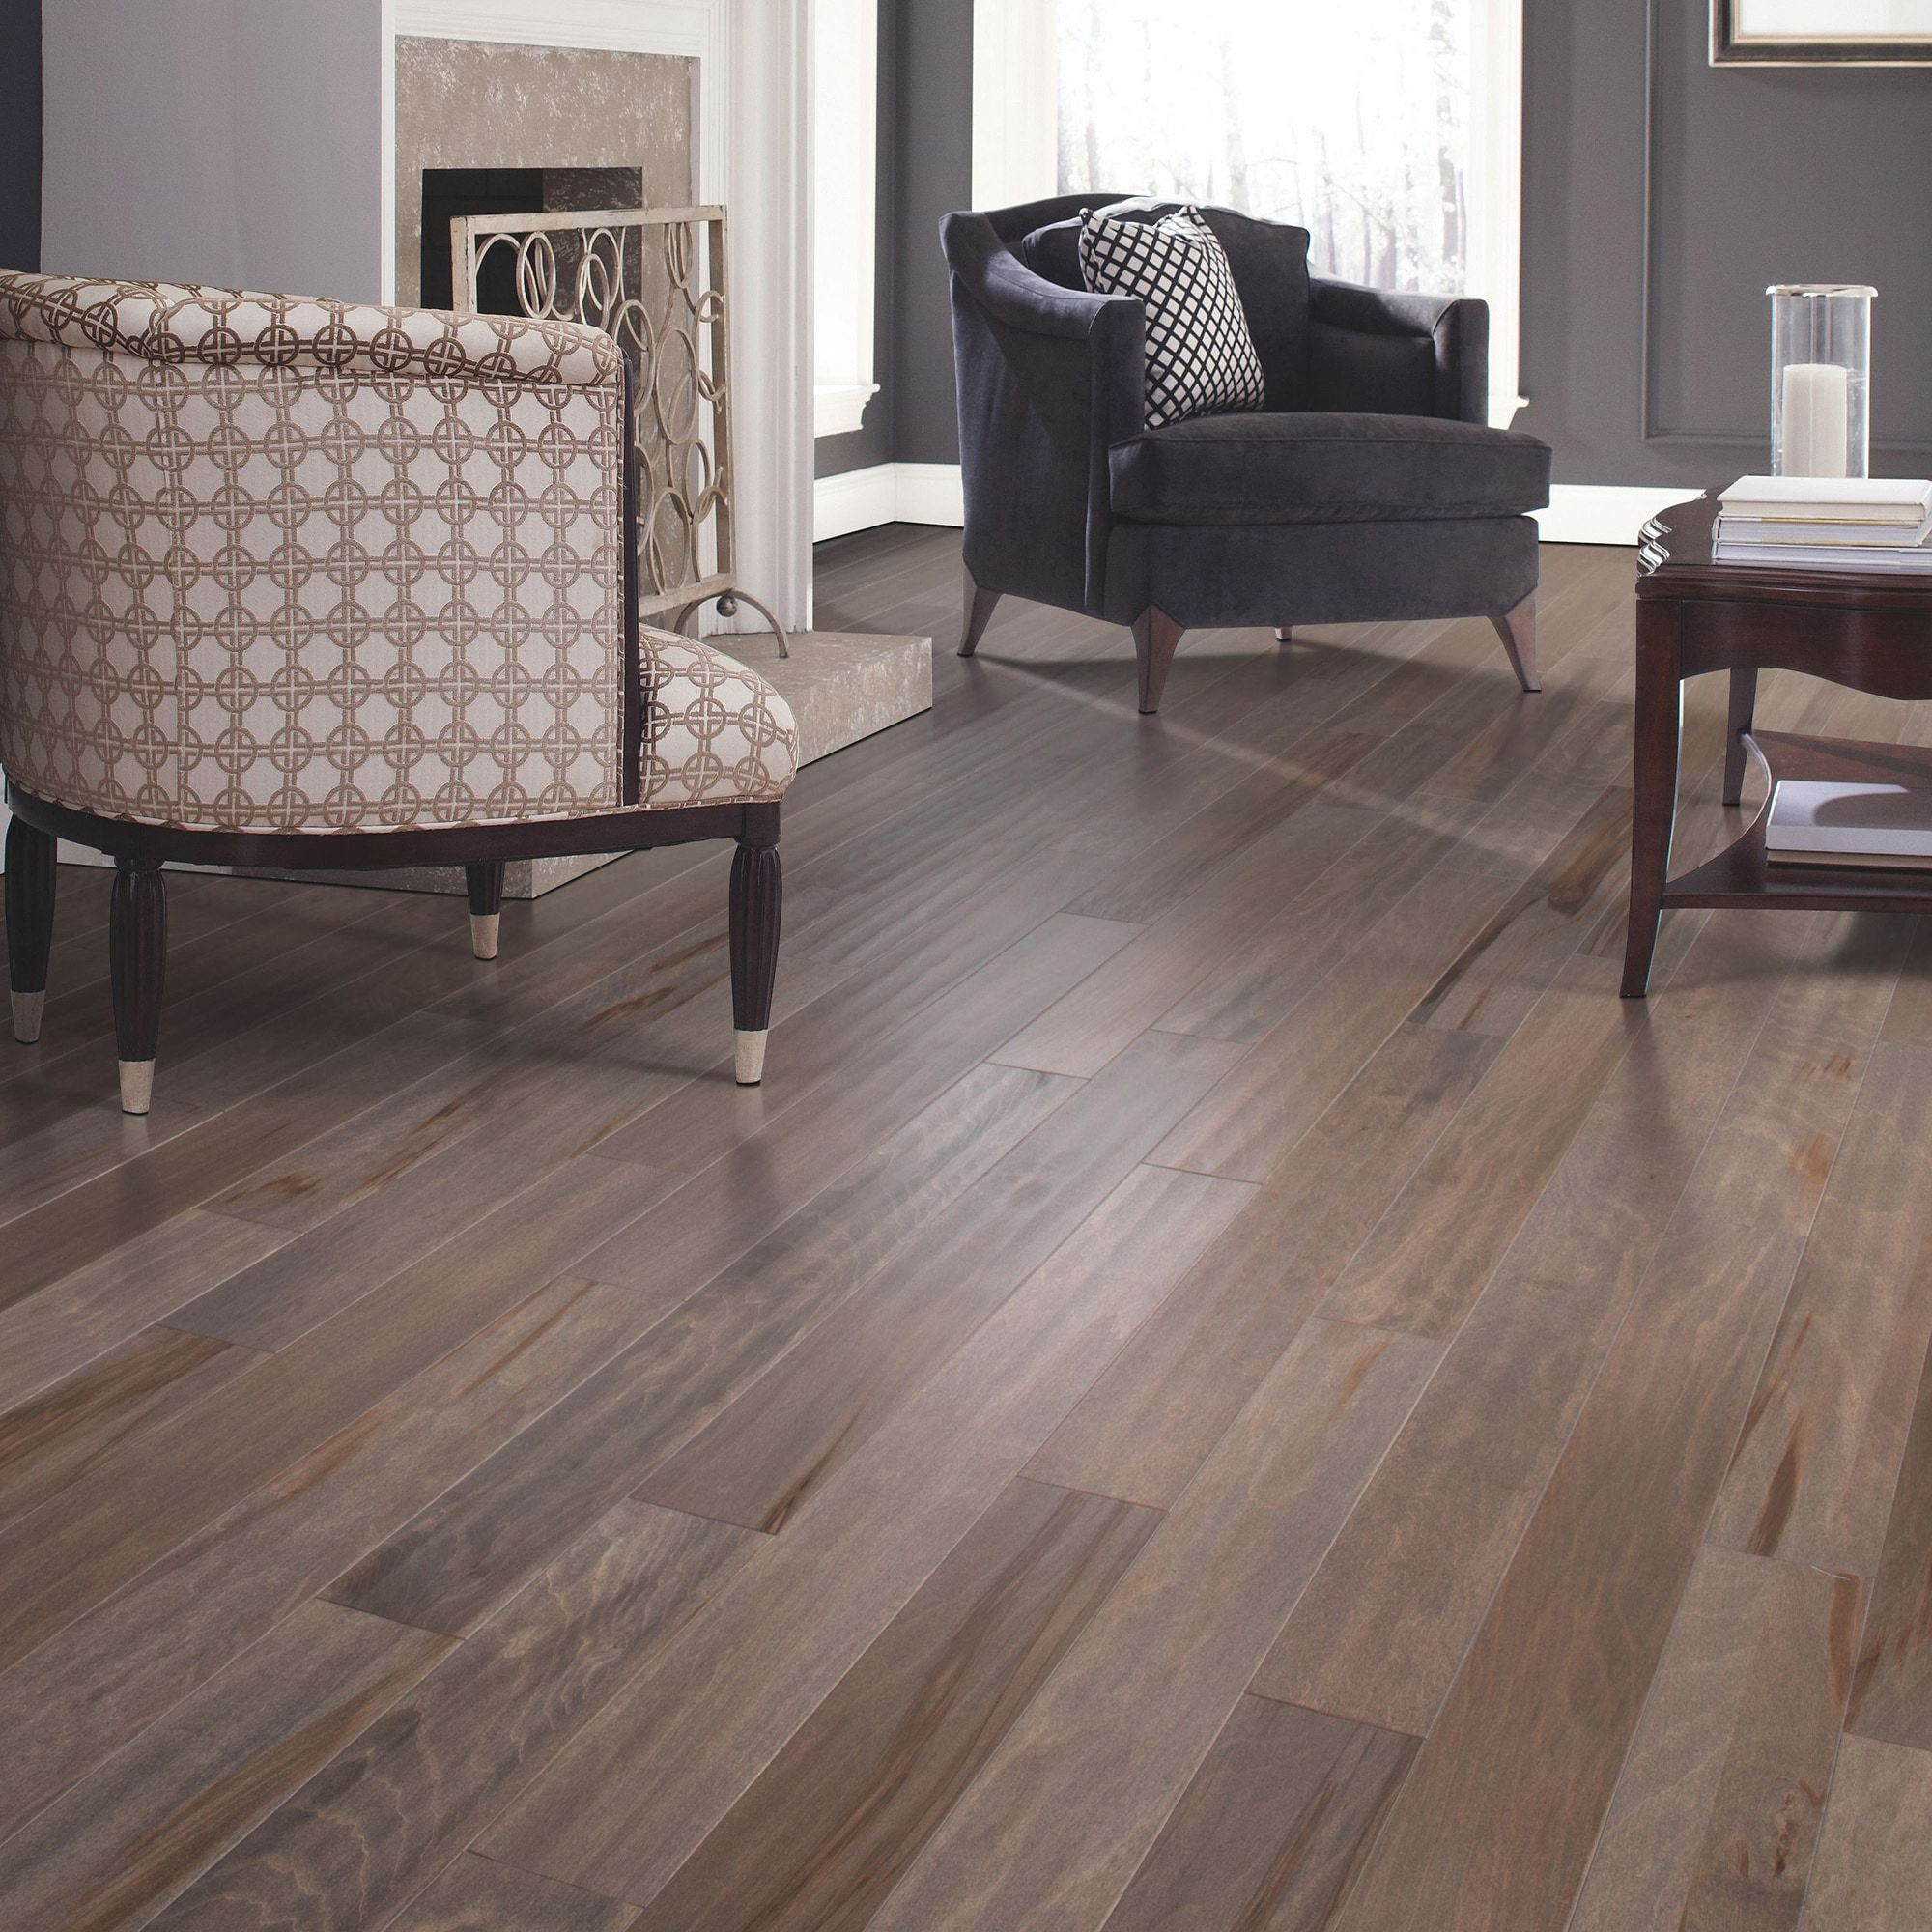 4 Inch Oak Hardwood Flooring Of Builddirecta Mohawk Flooring Engineered Hardwood Ageless Allure with Regard to Builddirecta Mohawk Flooring Engineered Hardwood Ageless Allure Collection